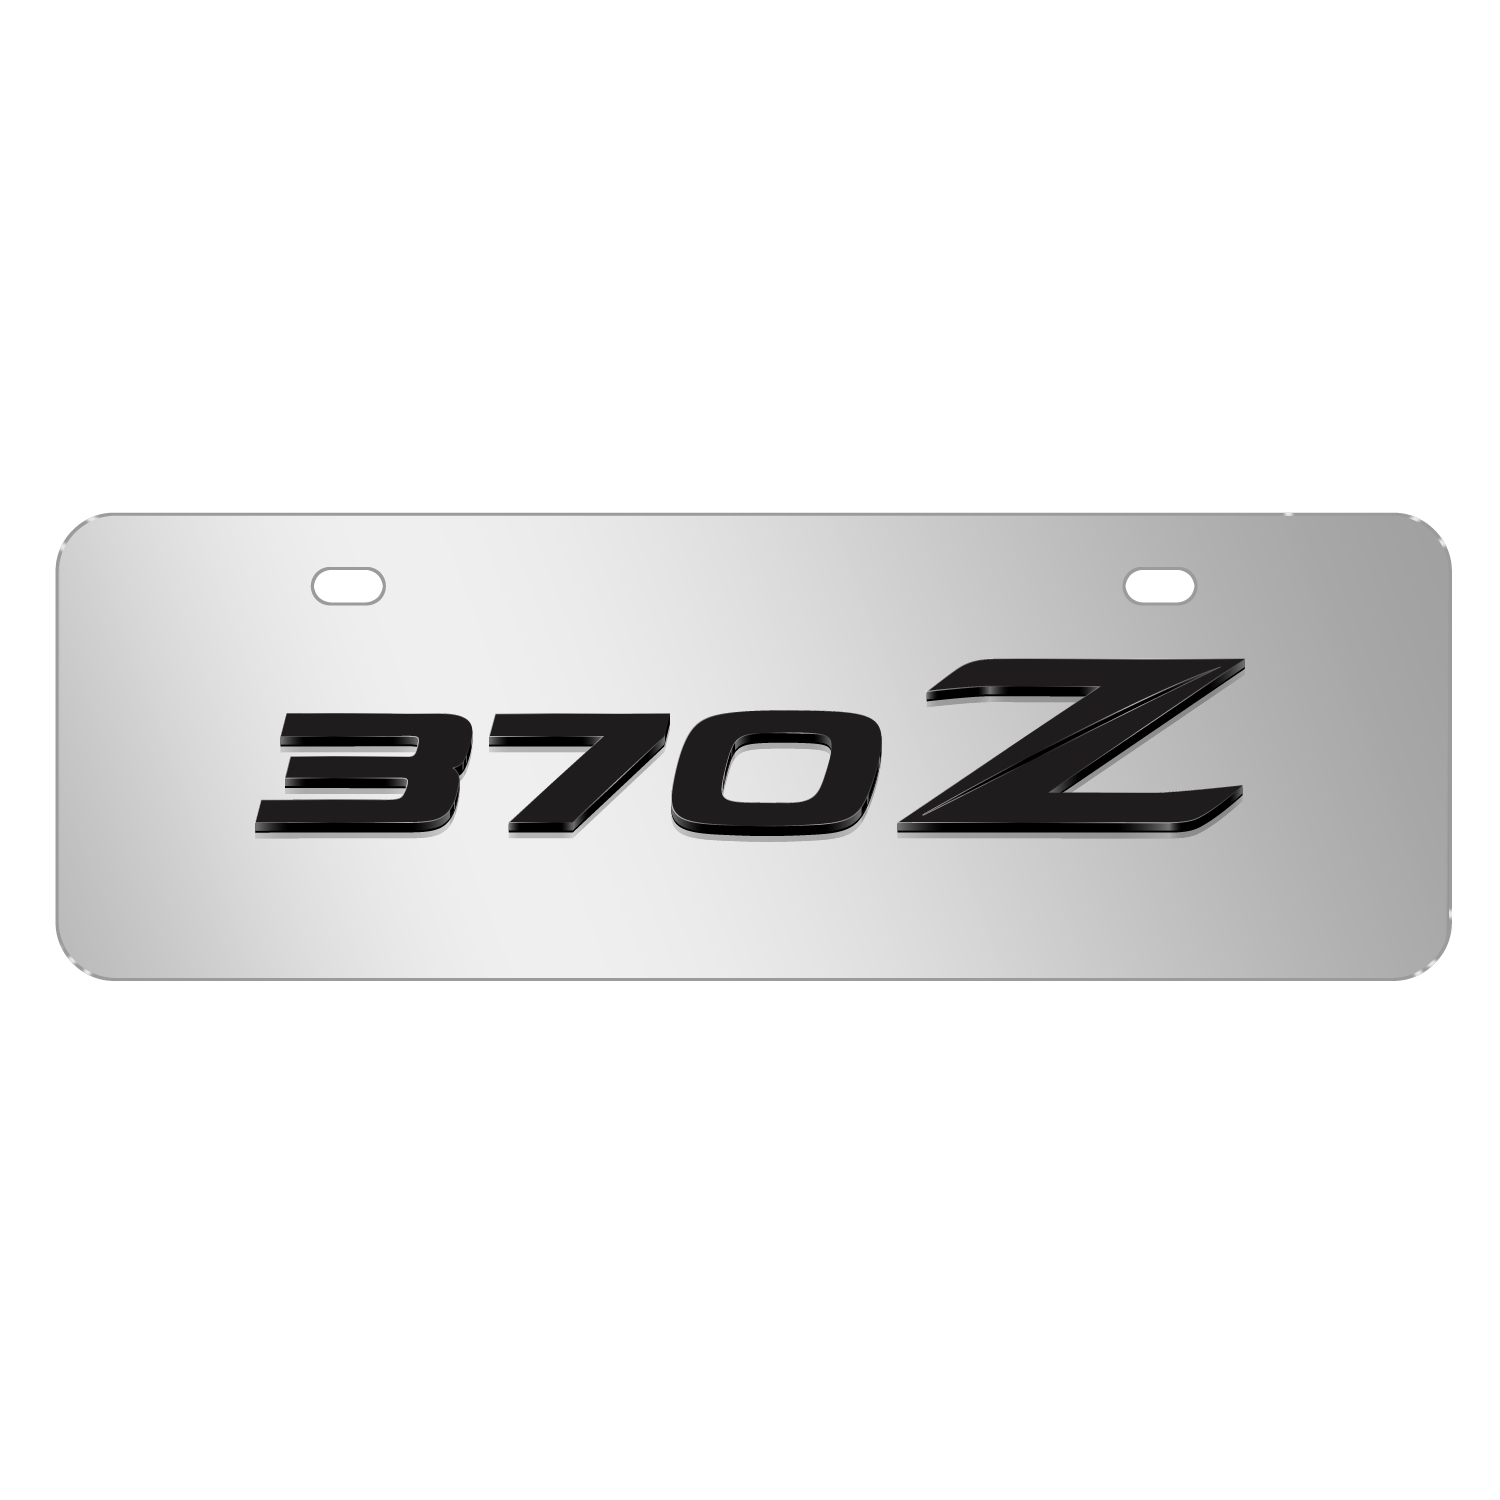 """Nissan 370Z 3D Mirror Chrome 12""""x4"""" Half-Size Stainless Steel License Plate"""